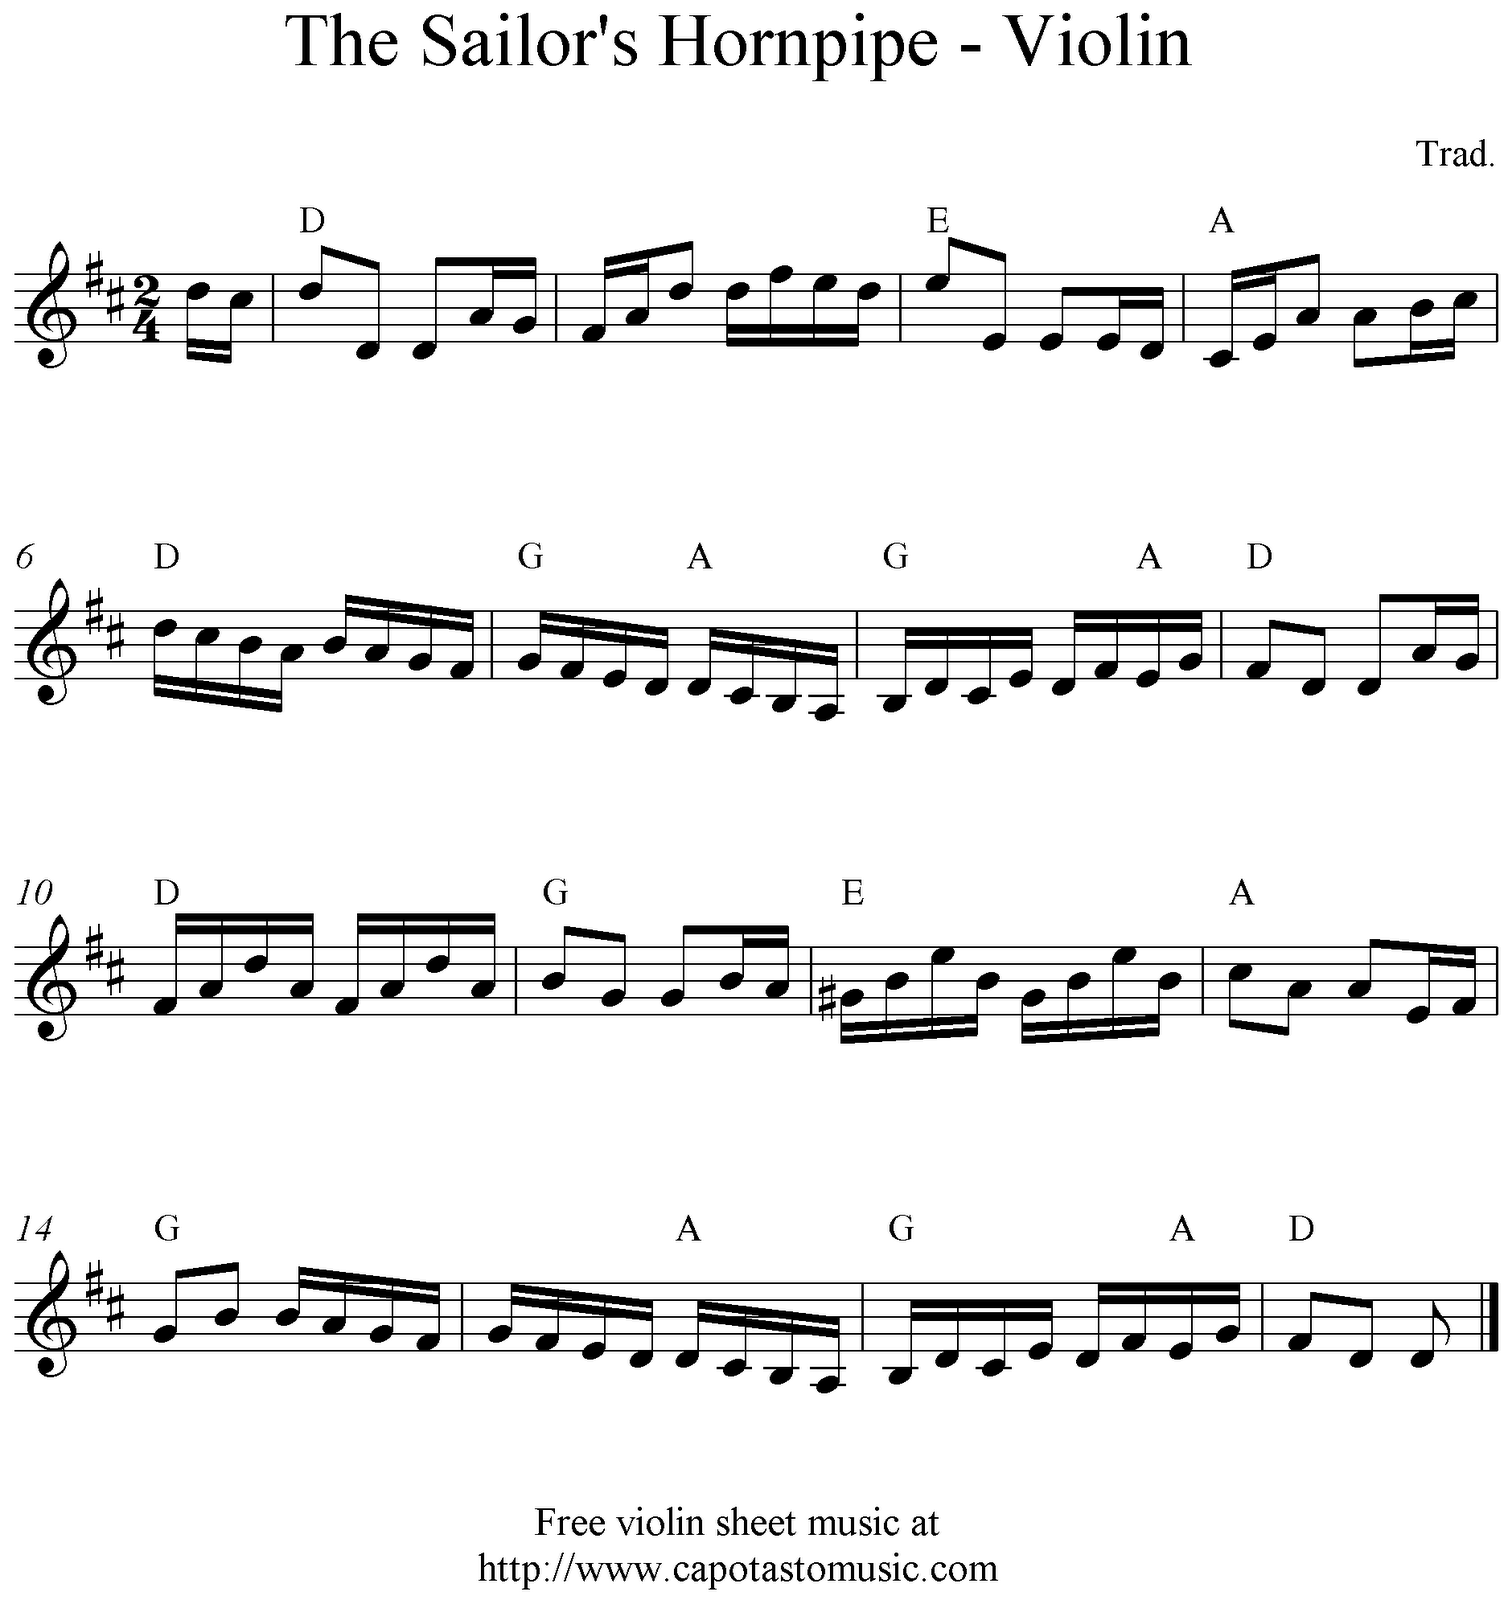 Free Sheet Music Scores: The Sailor's Hornpipe, Free